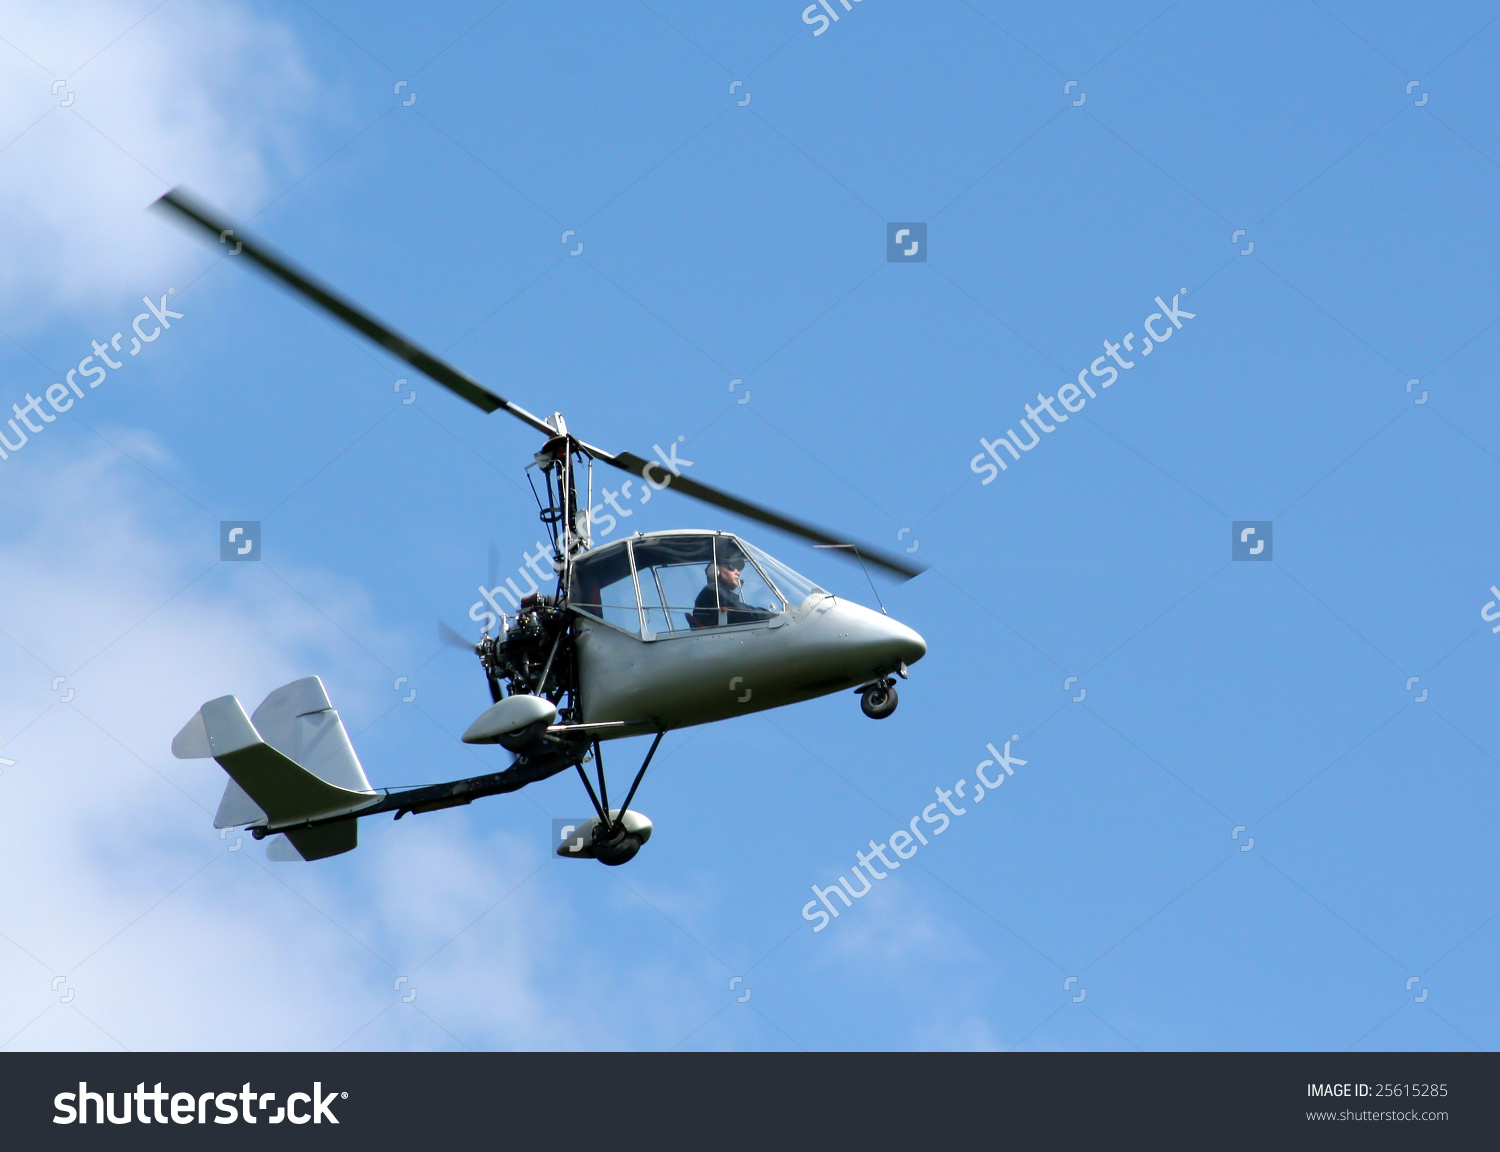 Ultralight Helicopter Being Flown Above Clouds Stock Photo.